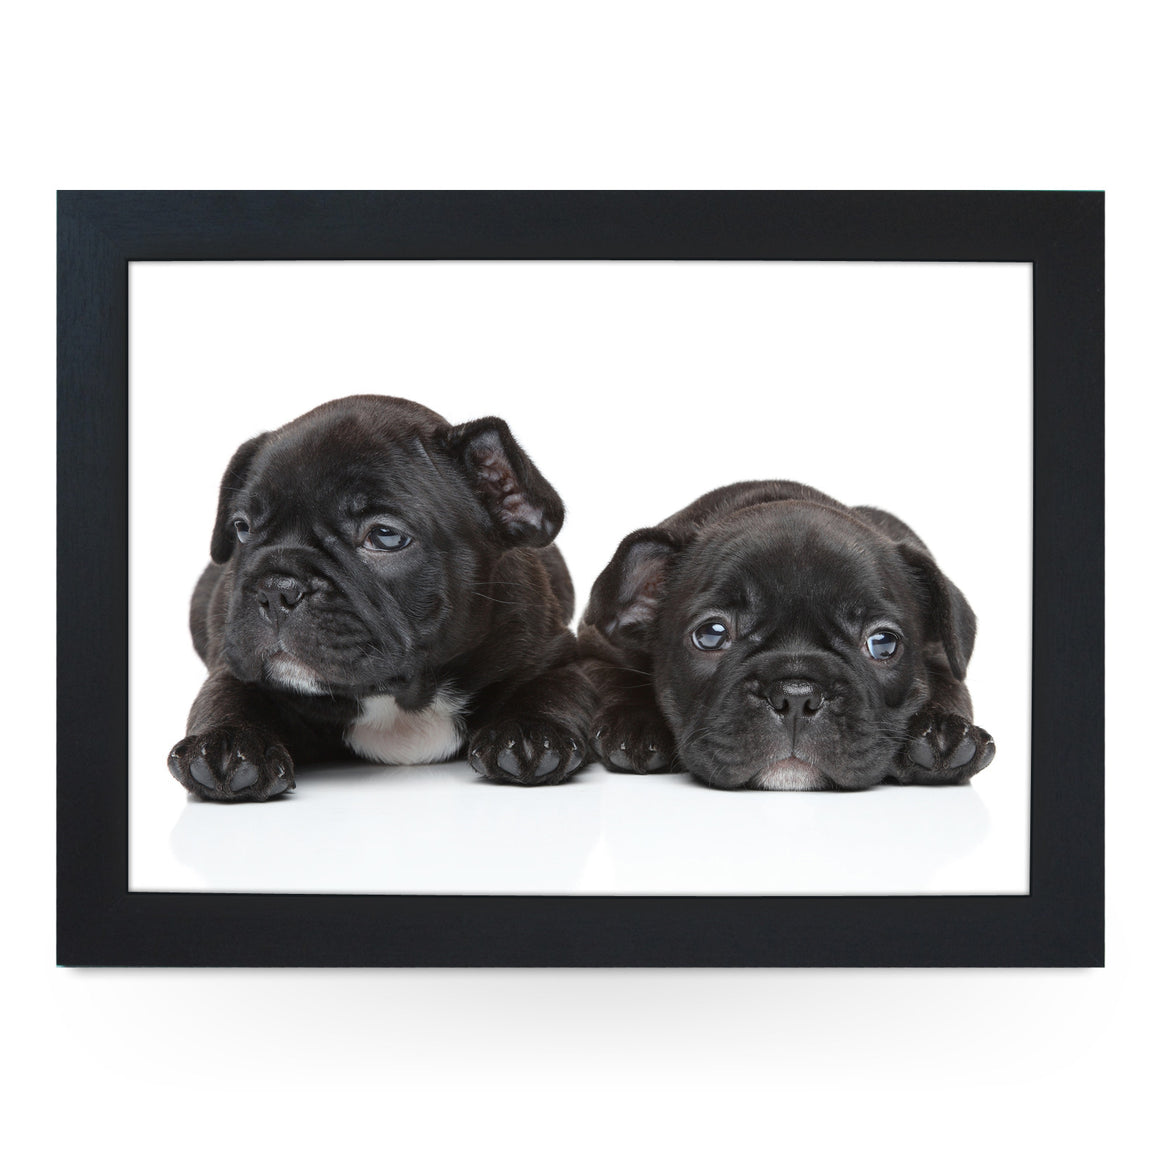 French Bulldog Puppies Lap Tray - L0139